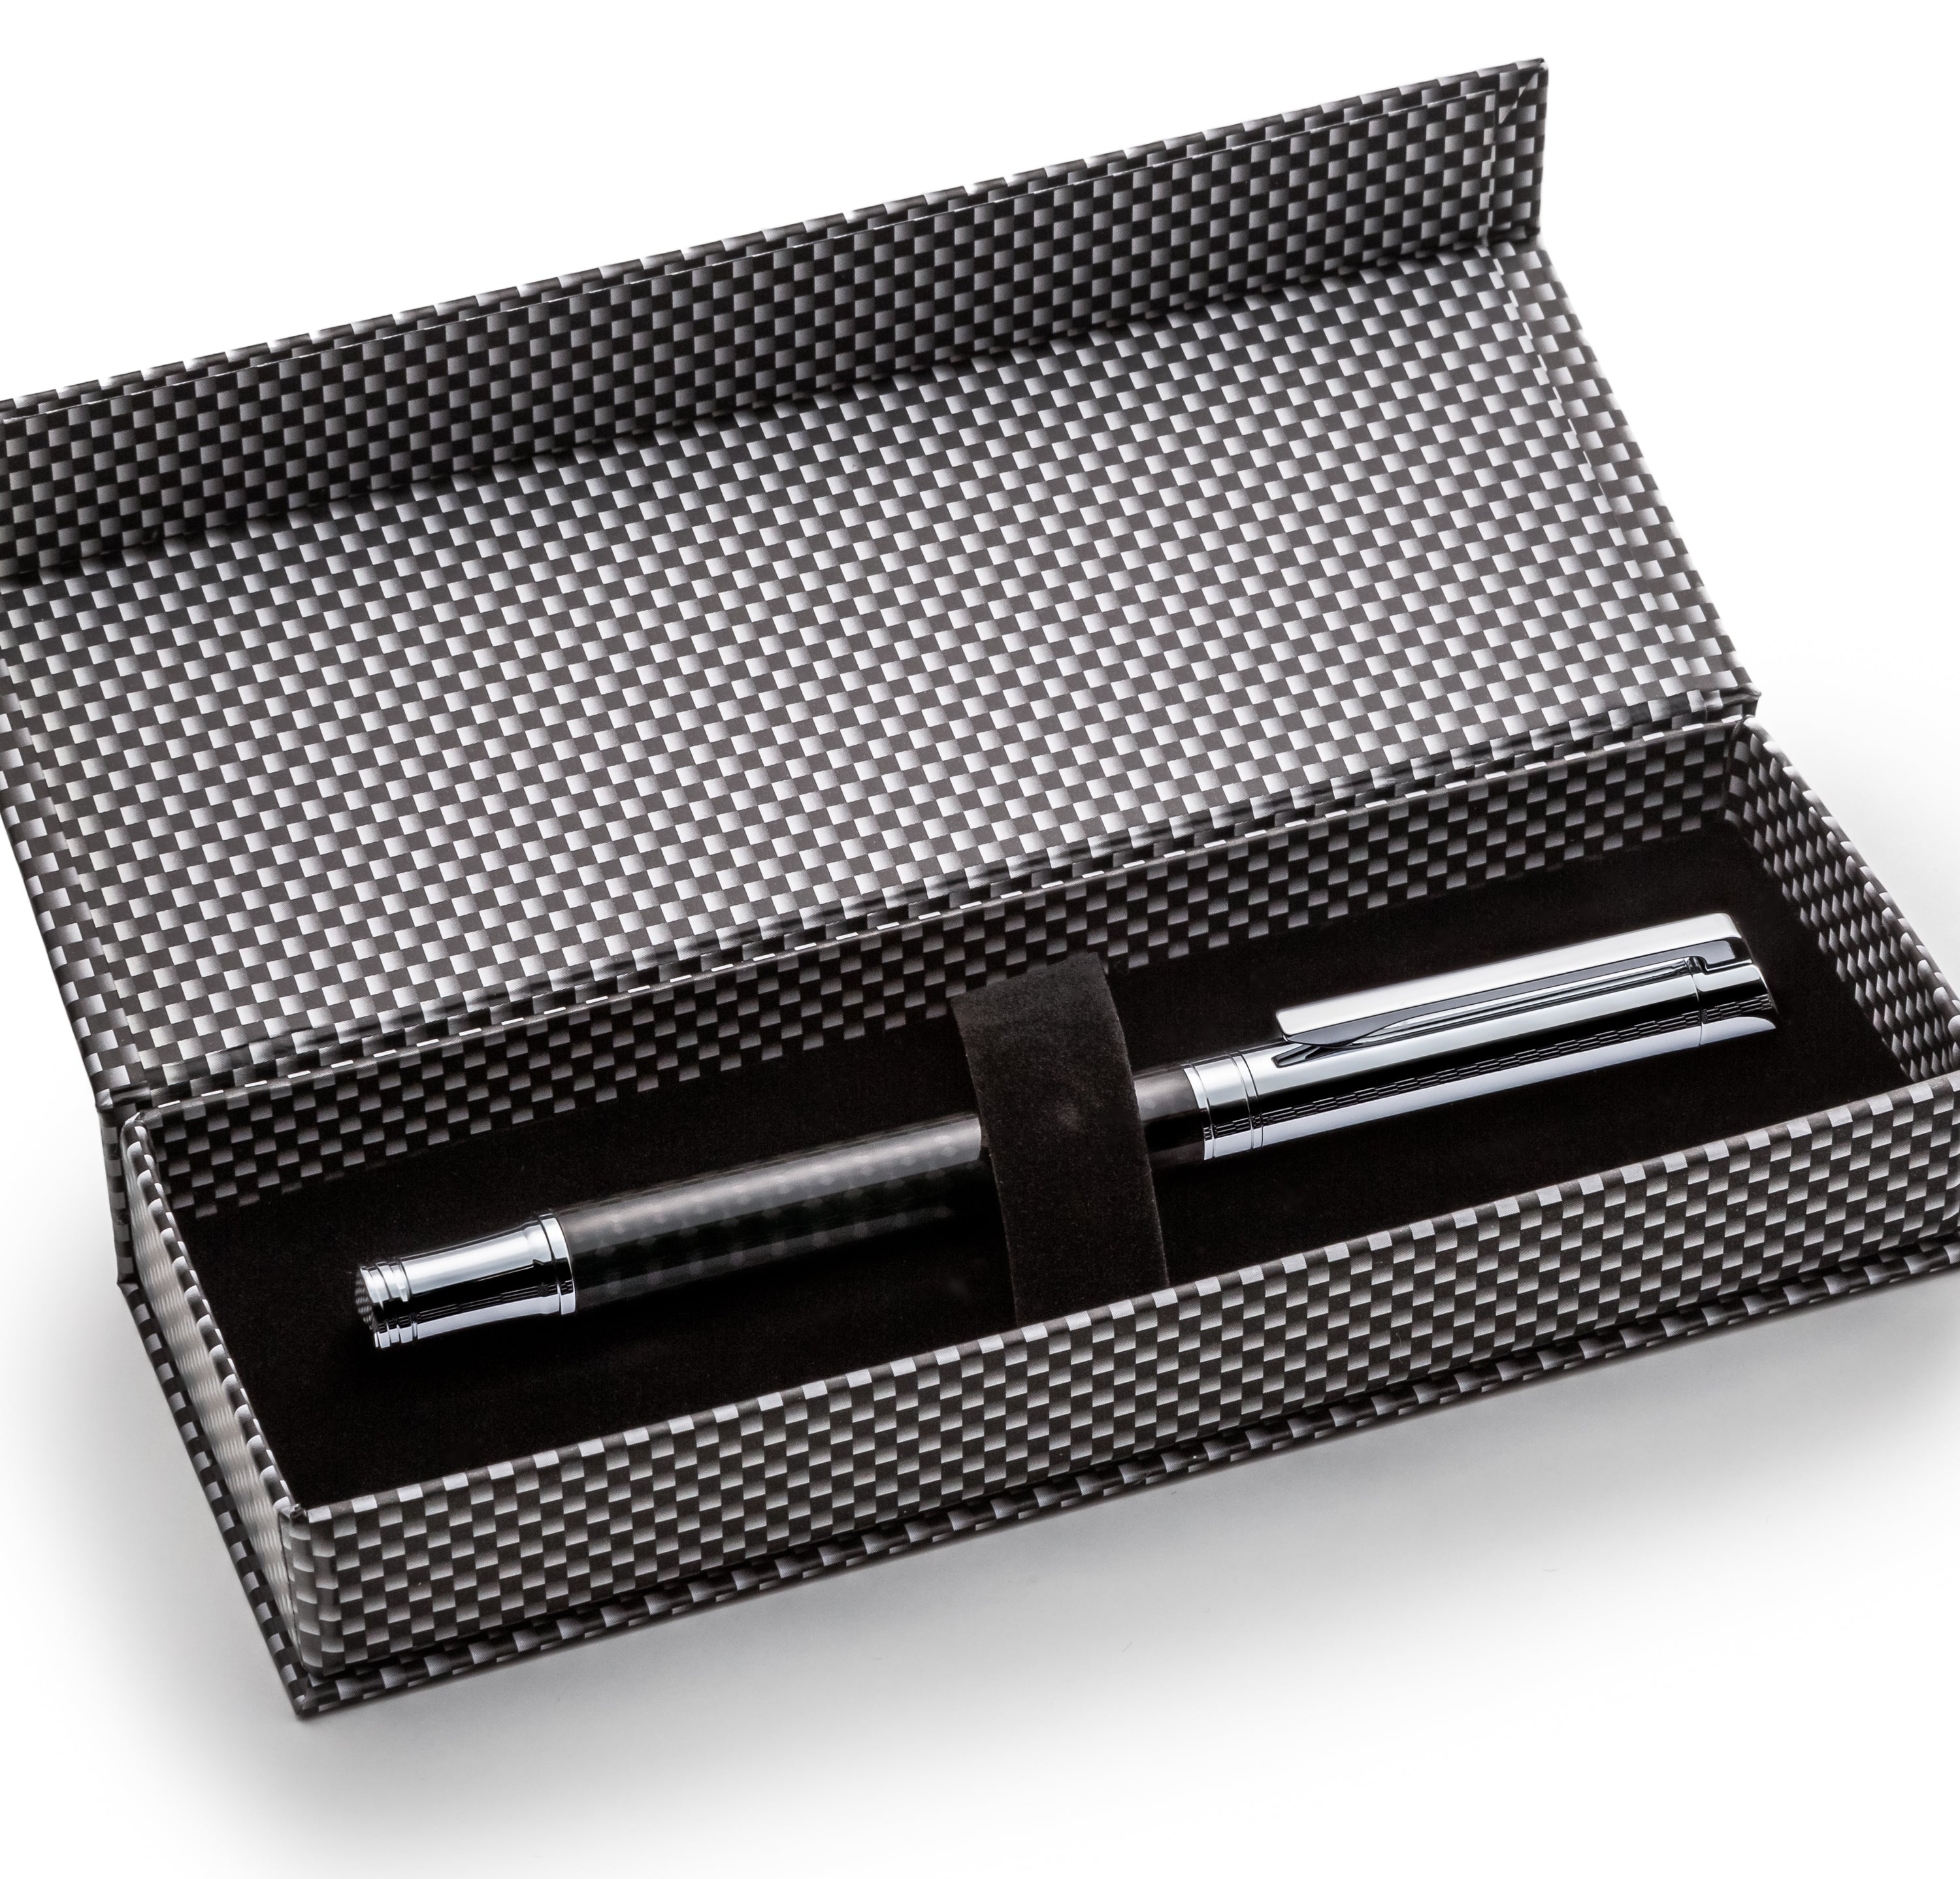 Stylish Carbon Fiber Fountain Pen Set - Modern Cap - W/ Fine German Schmidt Nib & Elegant Gift Box Case